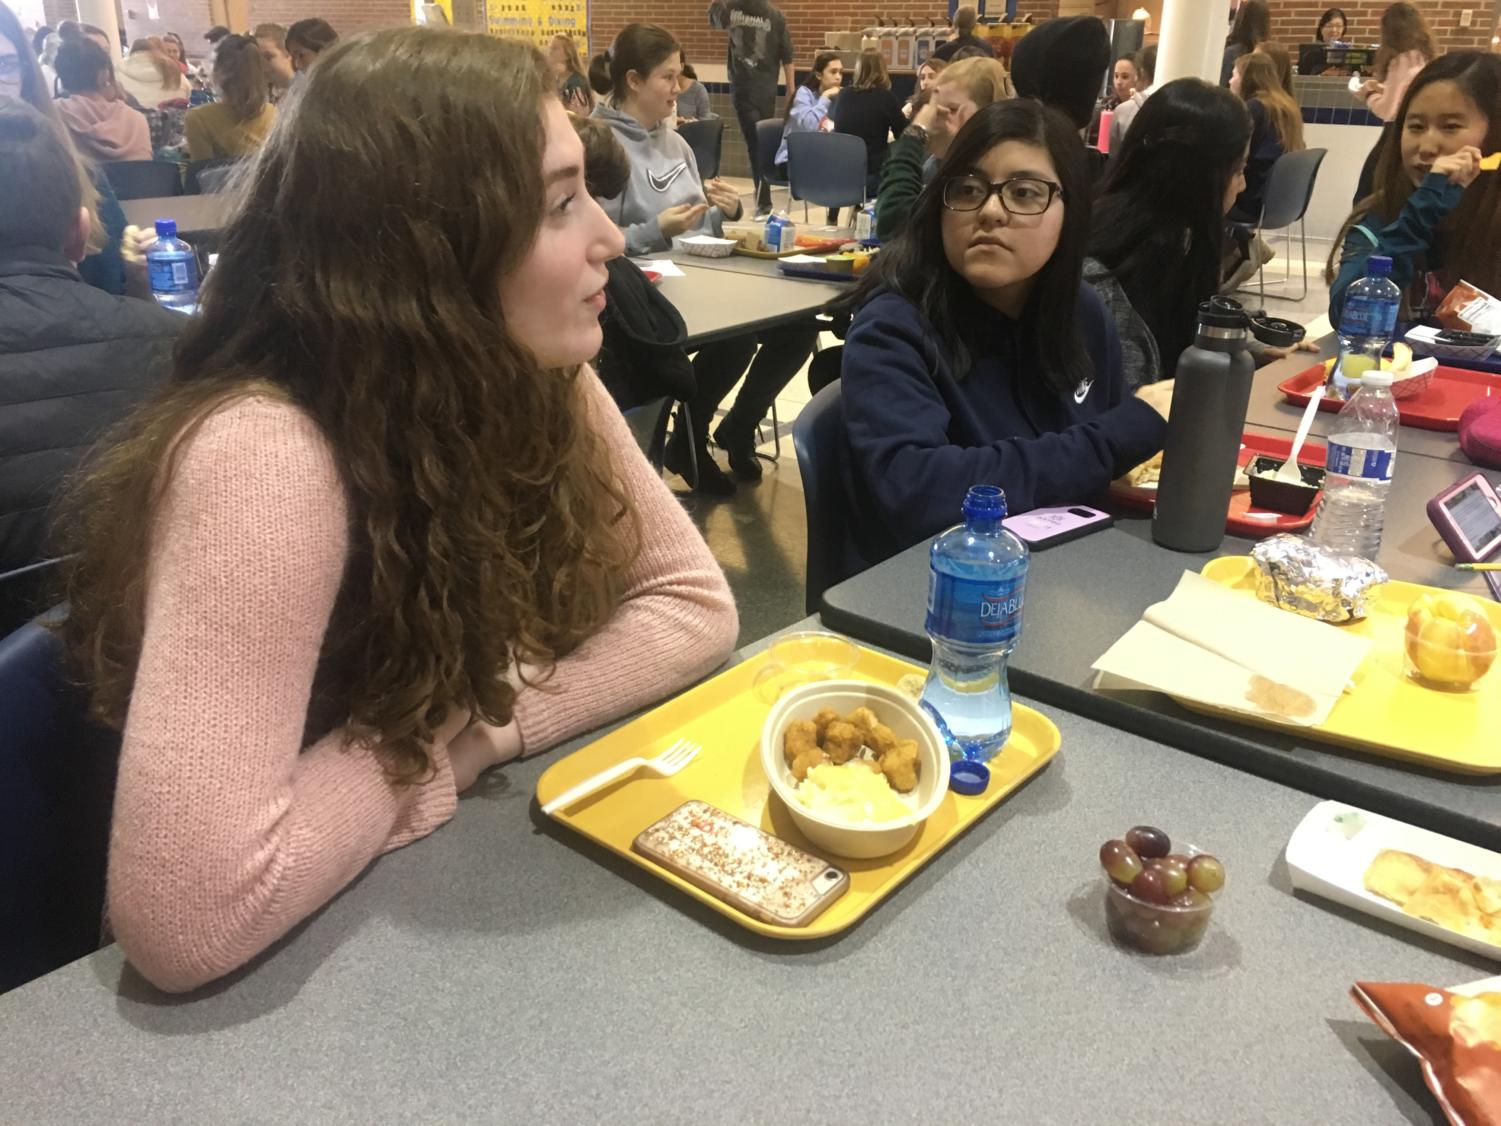 Sarah Konrad, TEDx member and sophomore, talks to her friends while eating lunch in Greyhound Station. She said she is sad that social studies teacher Allison Hargrove is no longer the TEDx sponsor, as she always talked to all the club members and had a positive effect on the club.